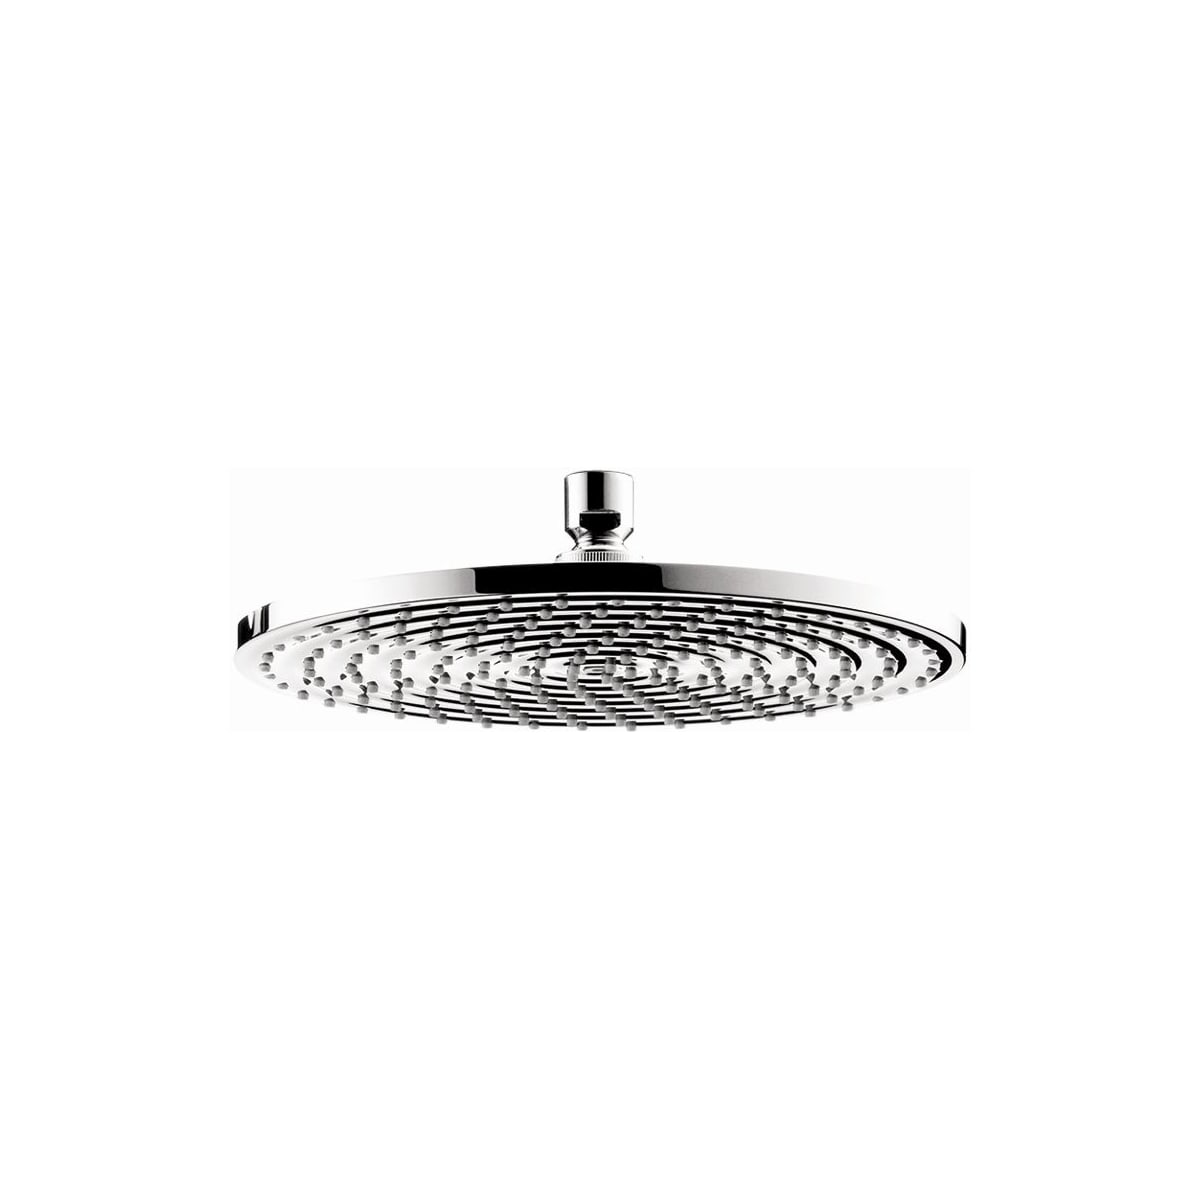 Hansgrohe Shower Raindance Collection Kit come with 1 Raindance S 150 AIR 1-Jet Showerhead (27486)